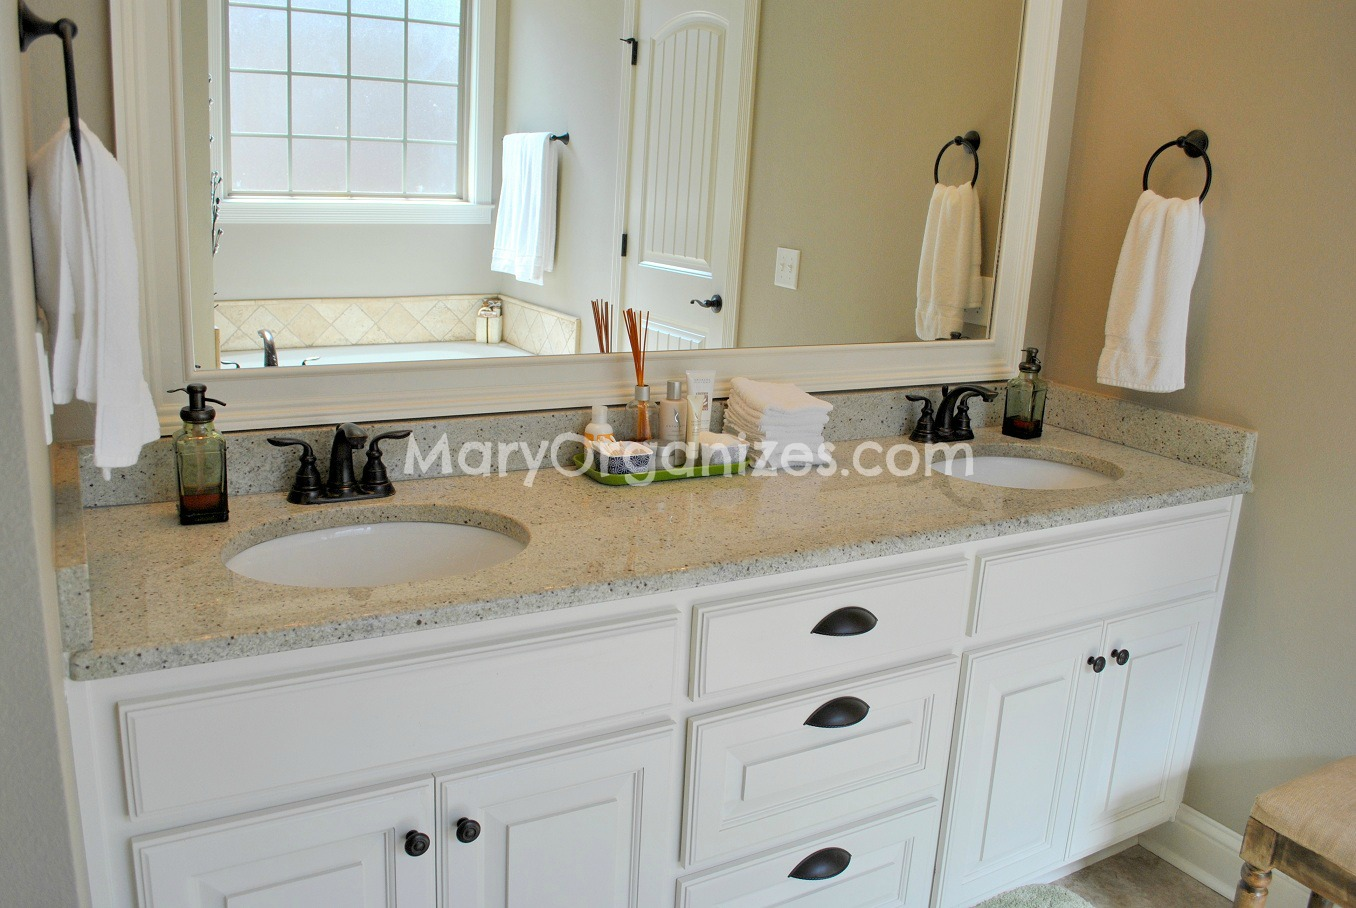 Mary Organizes Home Tour - Master Bathroom (1)